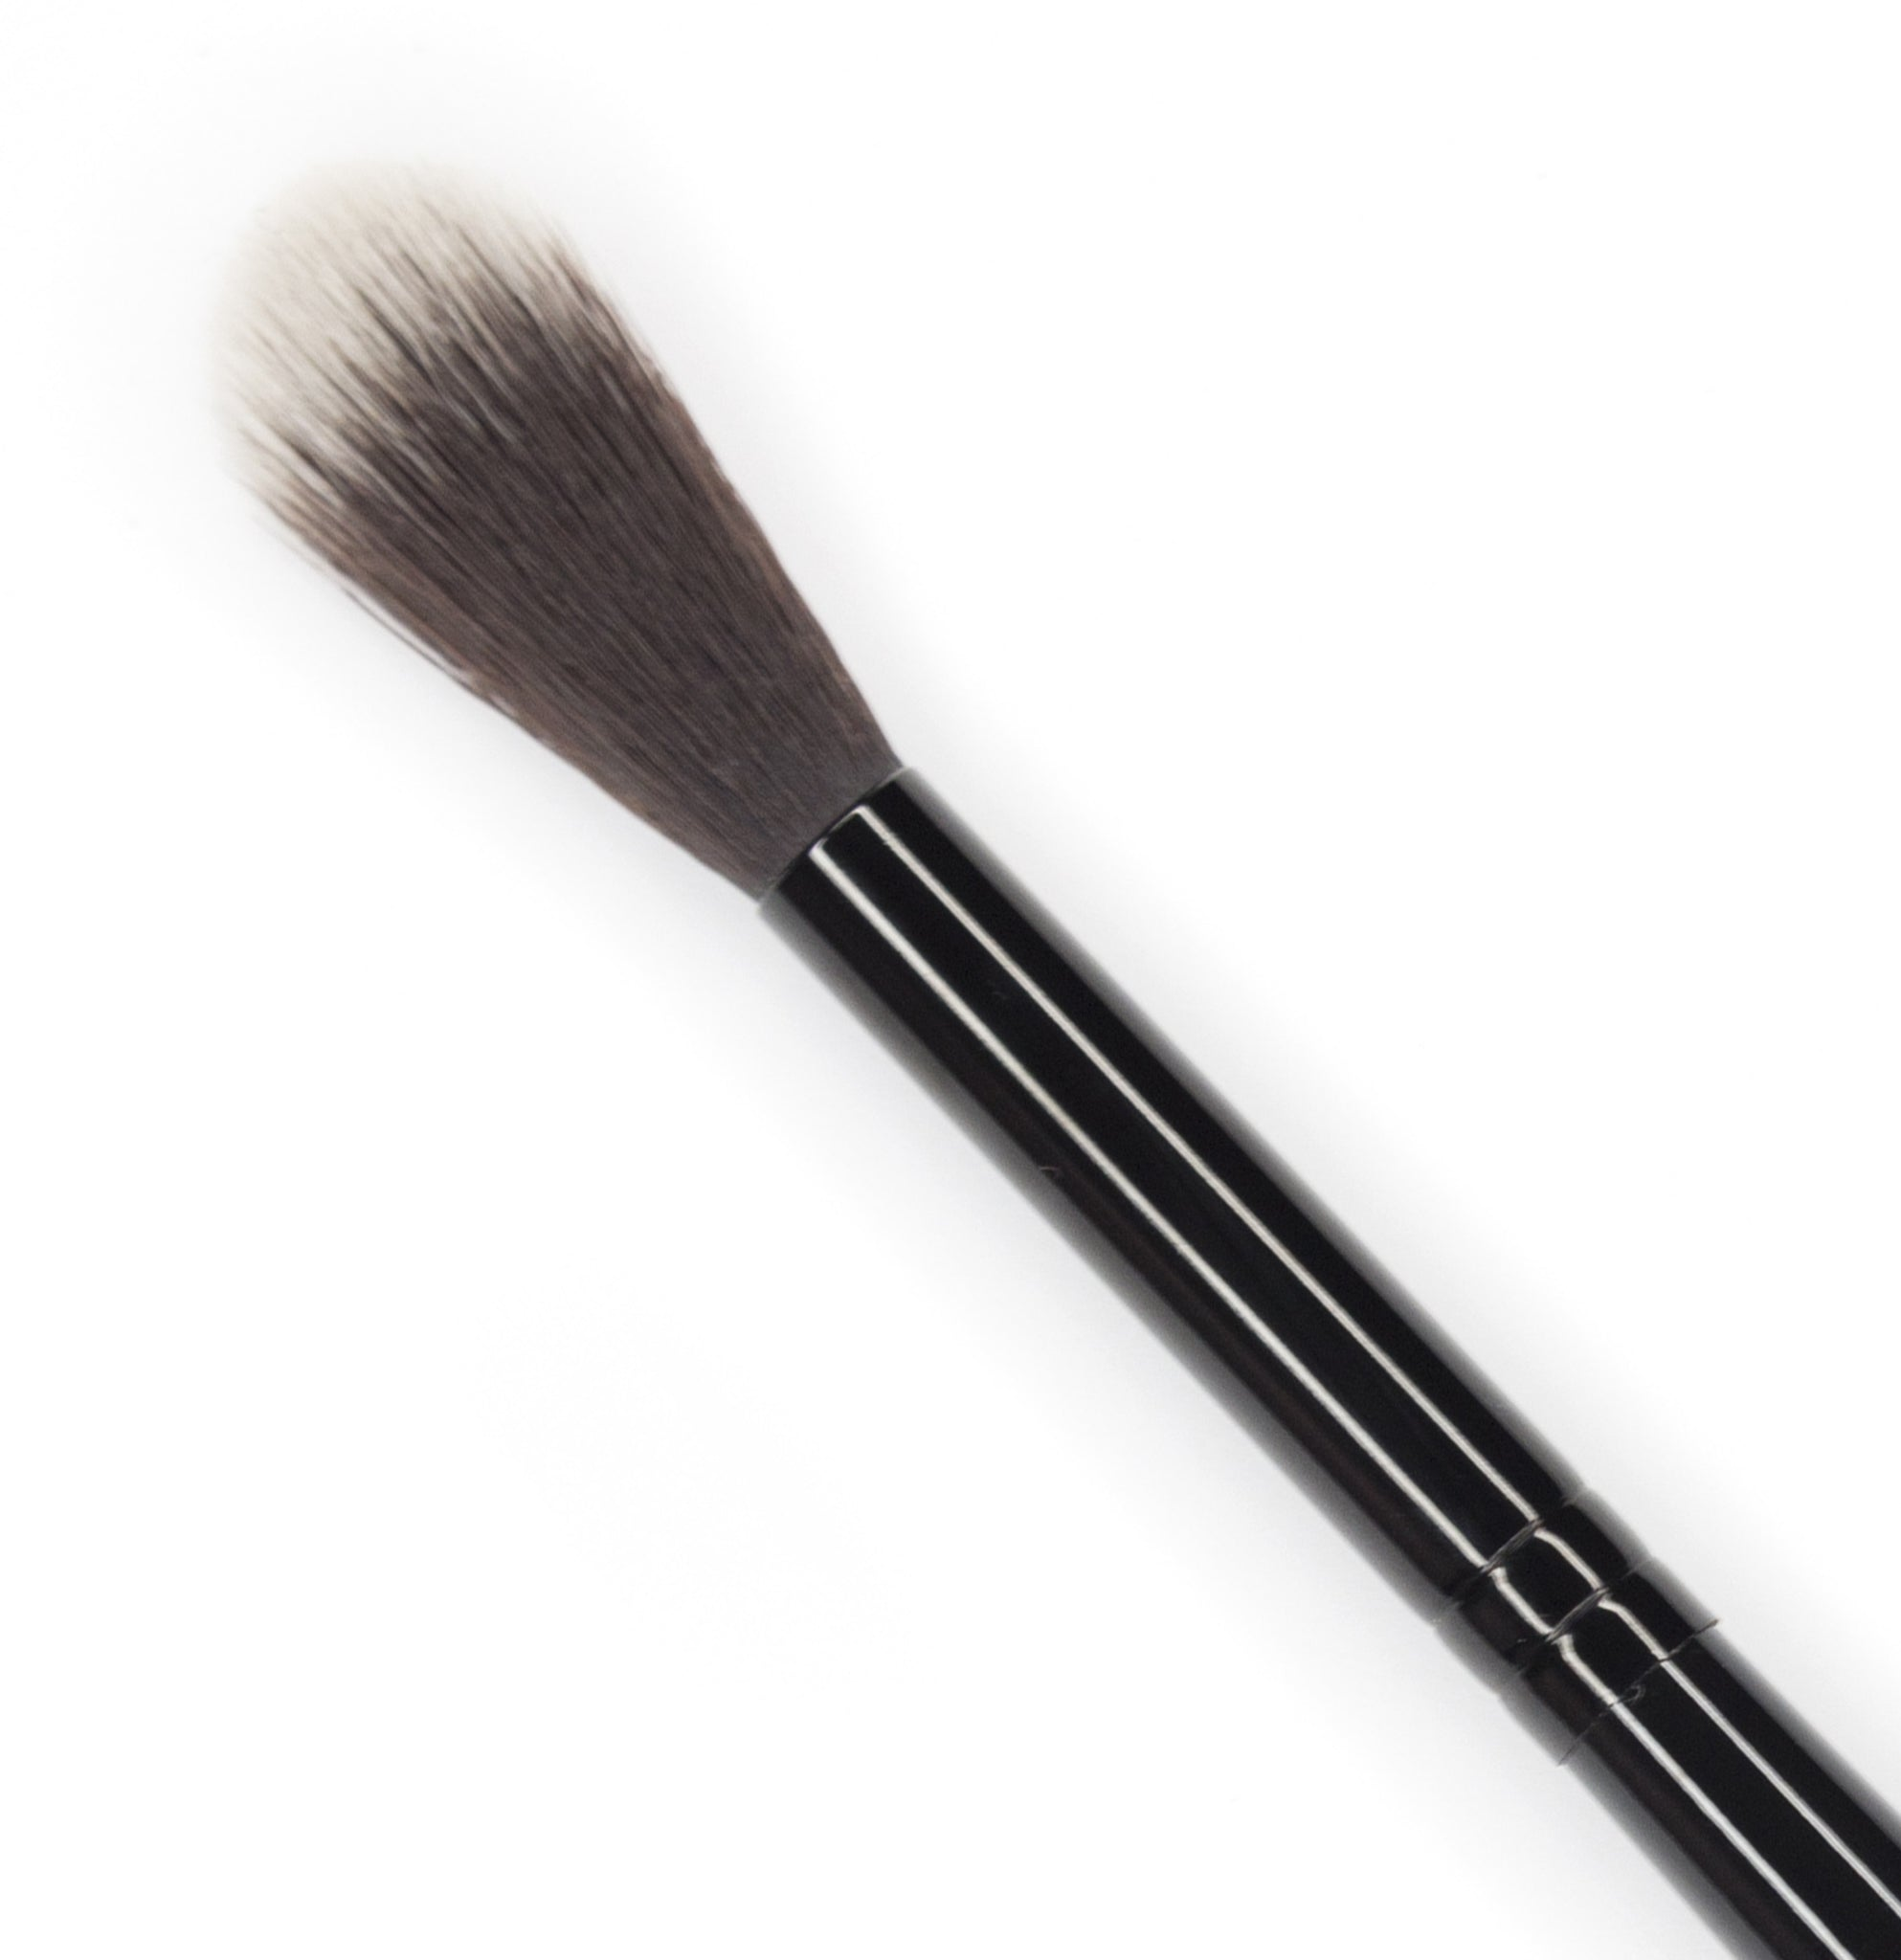 Pro Highlight Brush